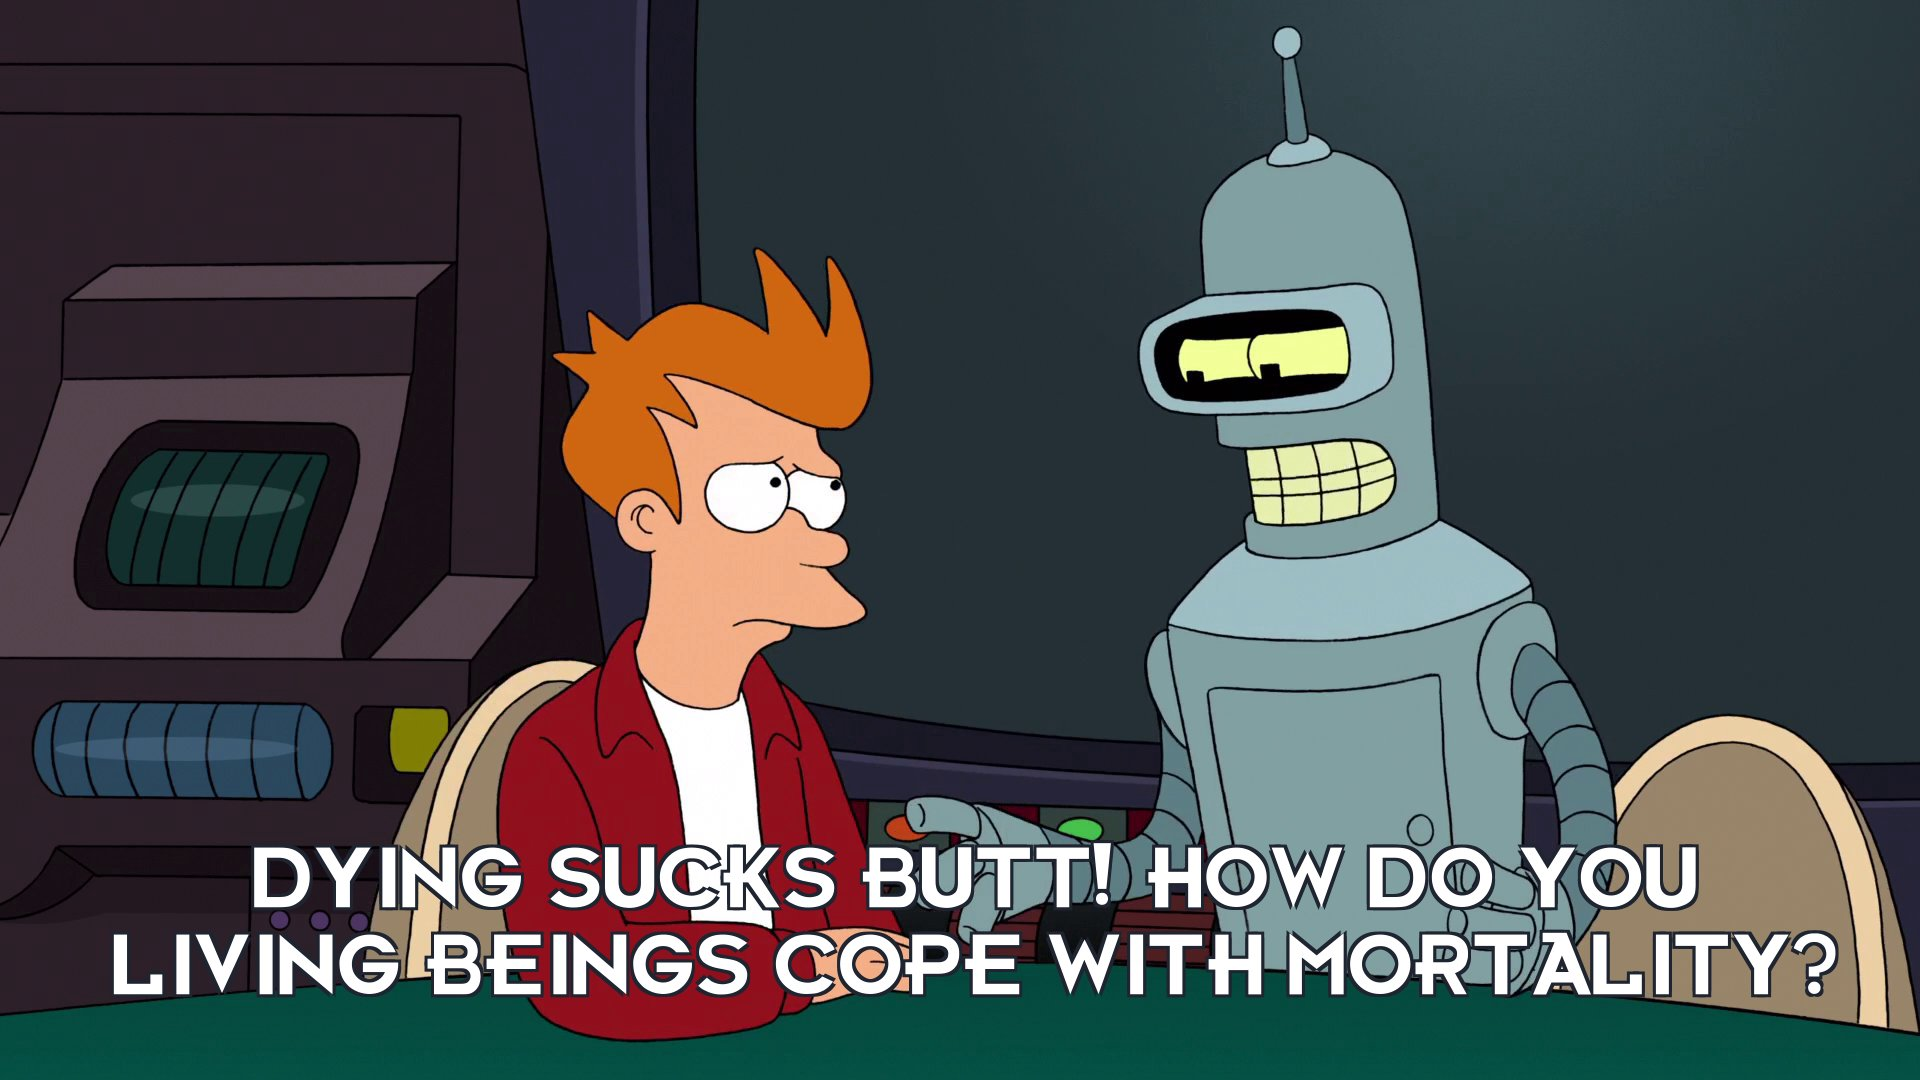 Bender Bending Rodriguez: Dying sucks butt! How do you living beings cope with mortality?